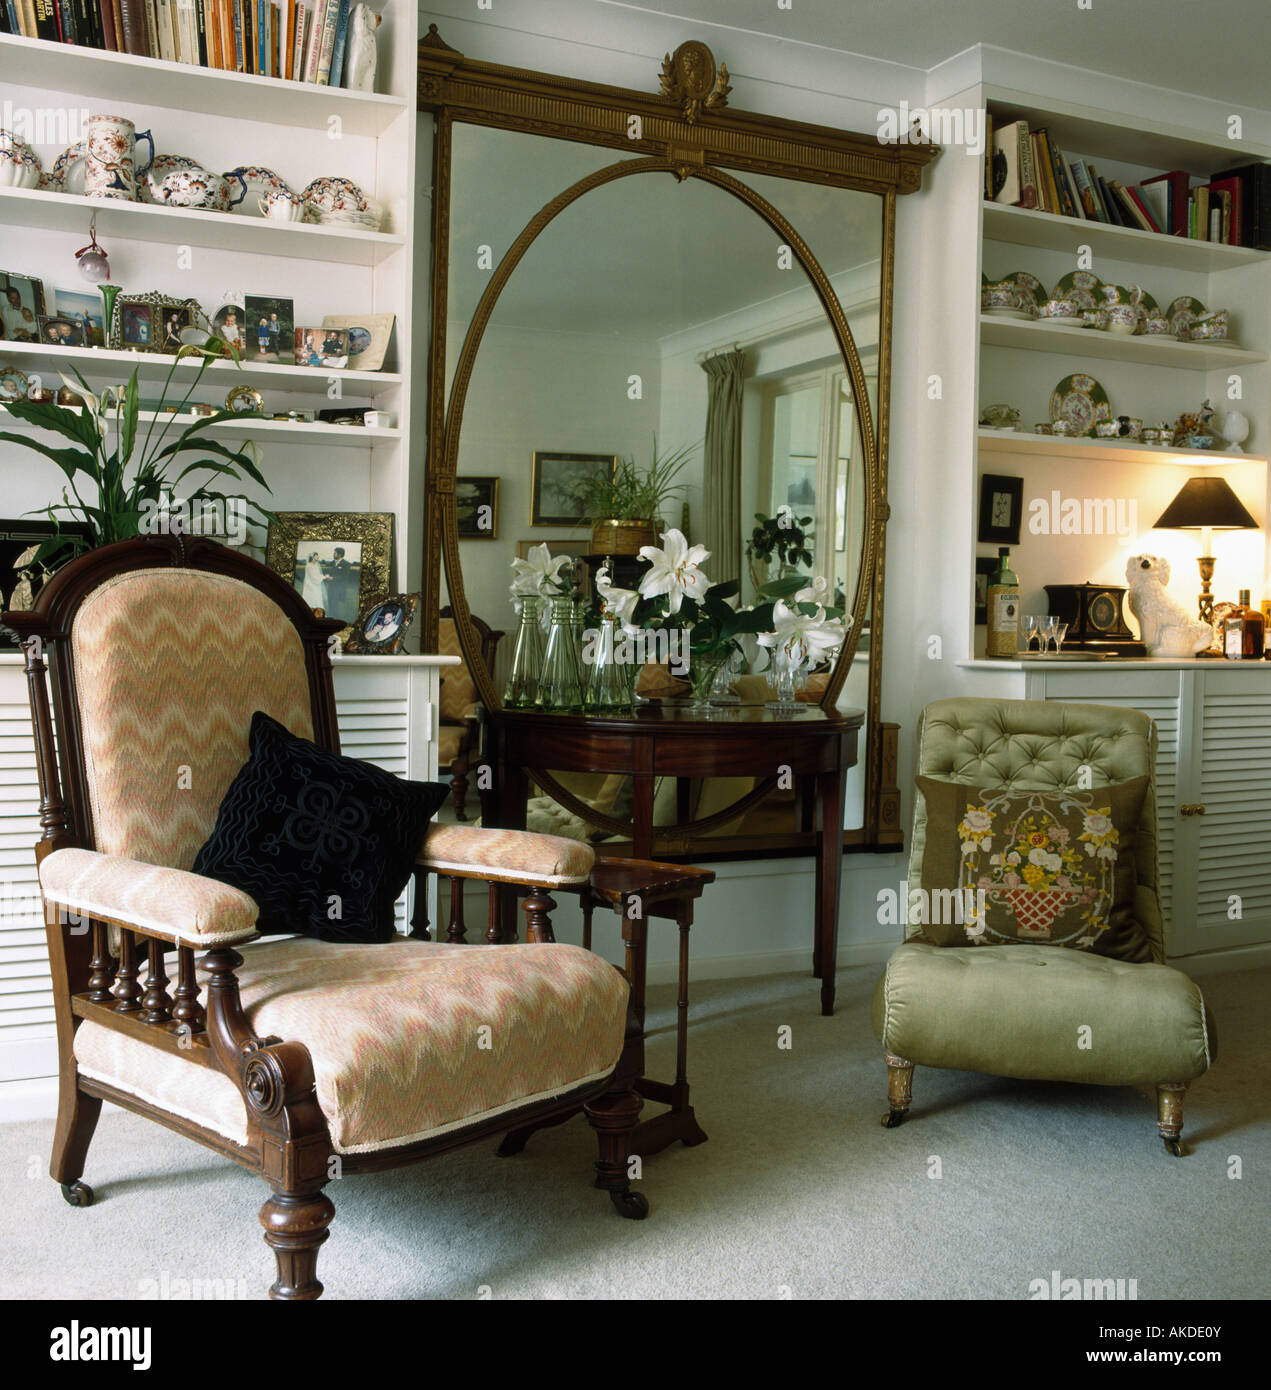 Edwardian Armchair And Small Green Victorian Chair On Either Side Of Console Table Below Large Antique Mirror In Living Room